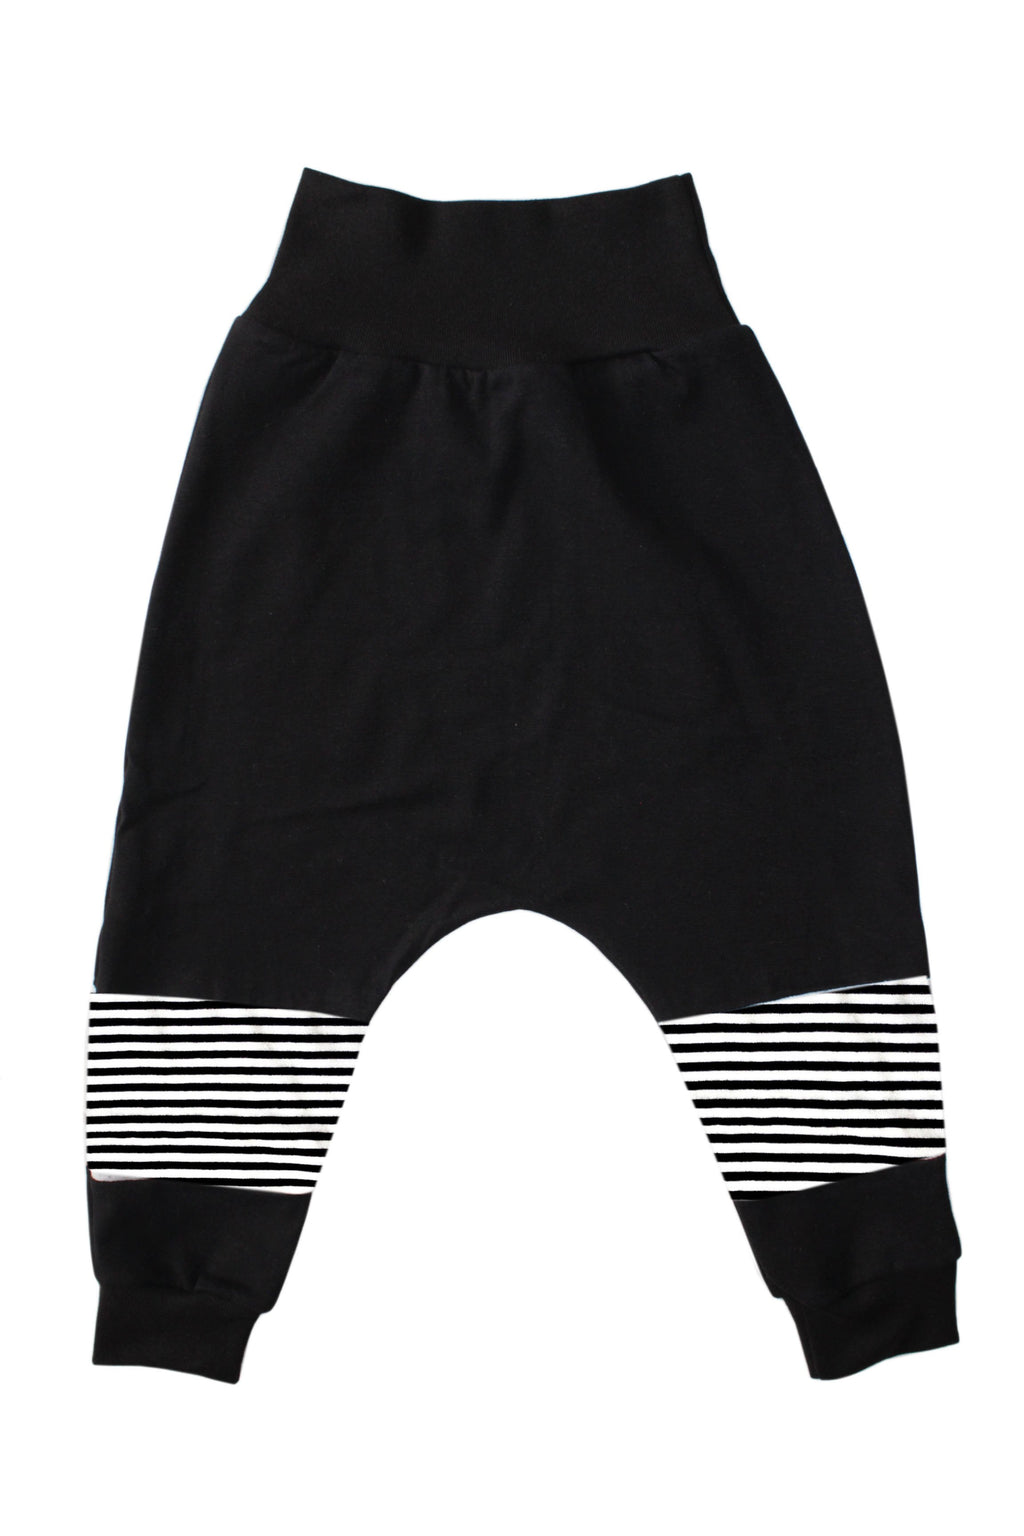 Panel Harem Pants - Thin Striped